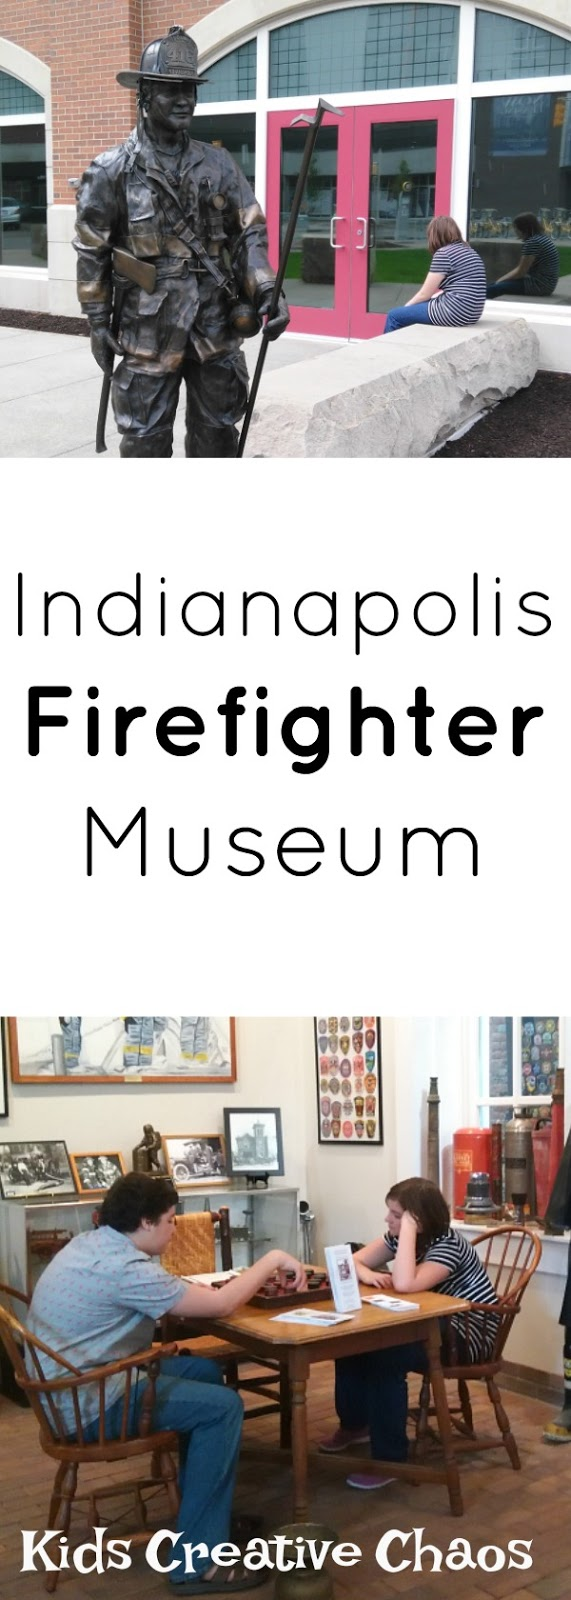 Indianapolis Firefighter Museum: Things to do in Indy